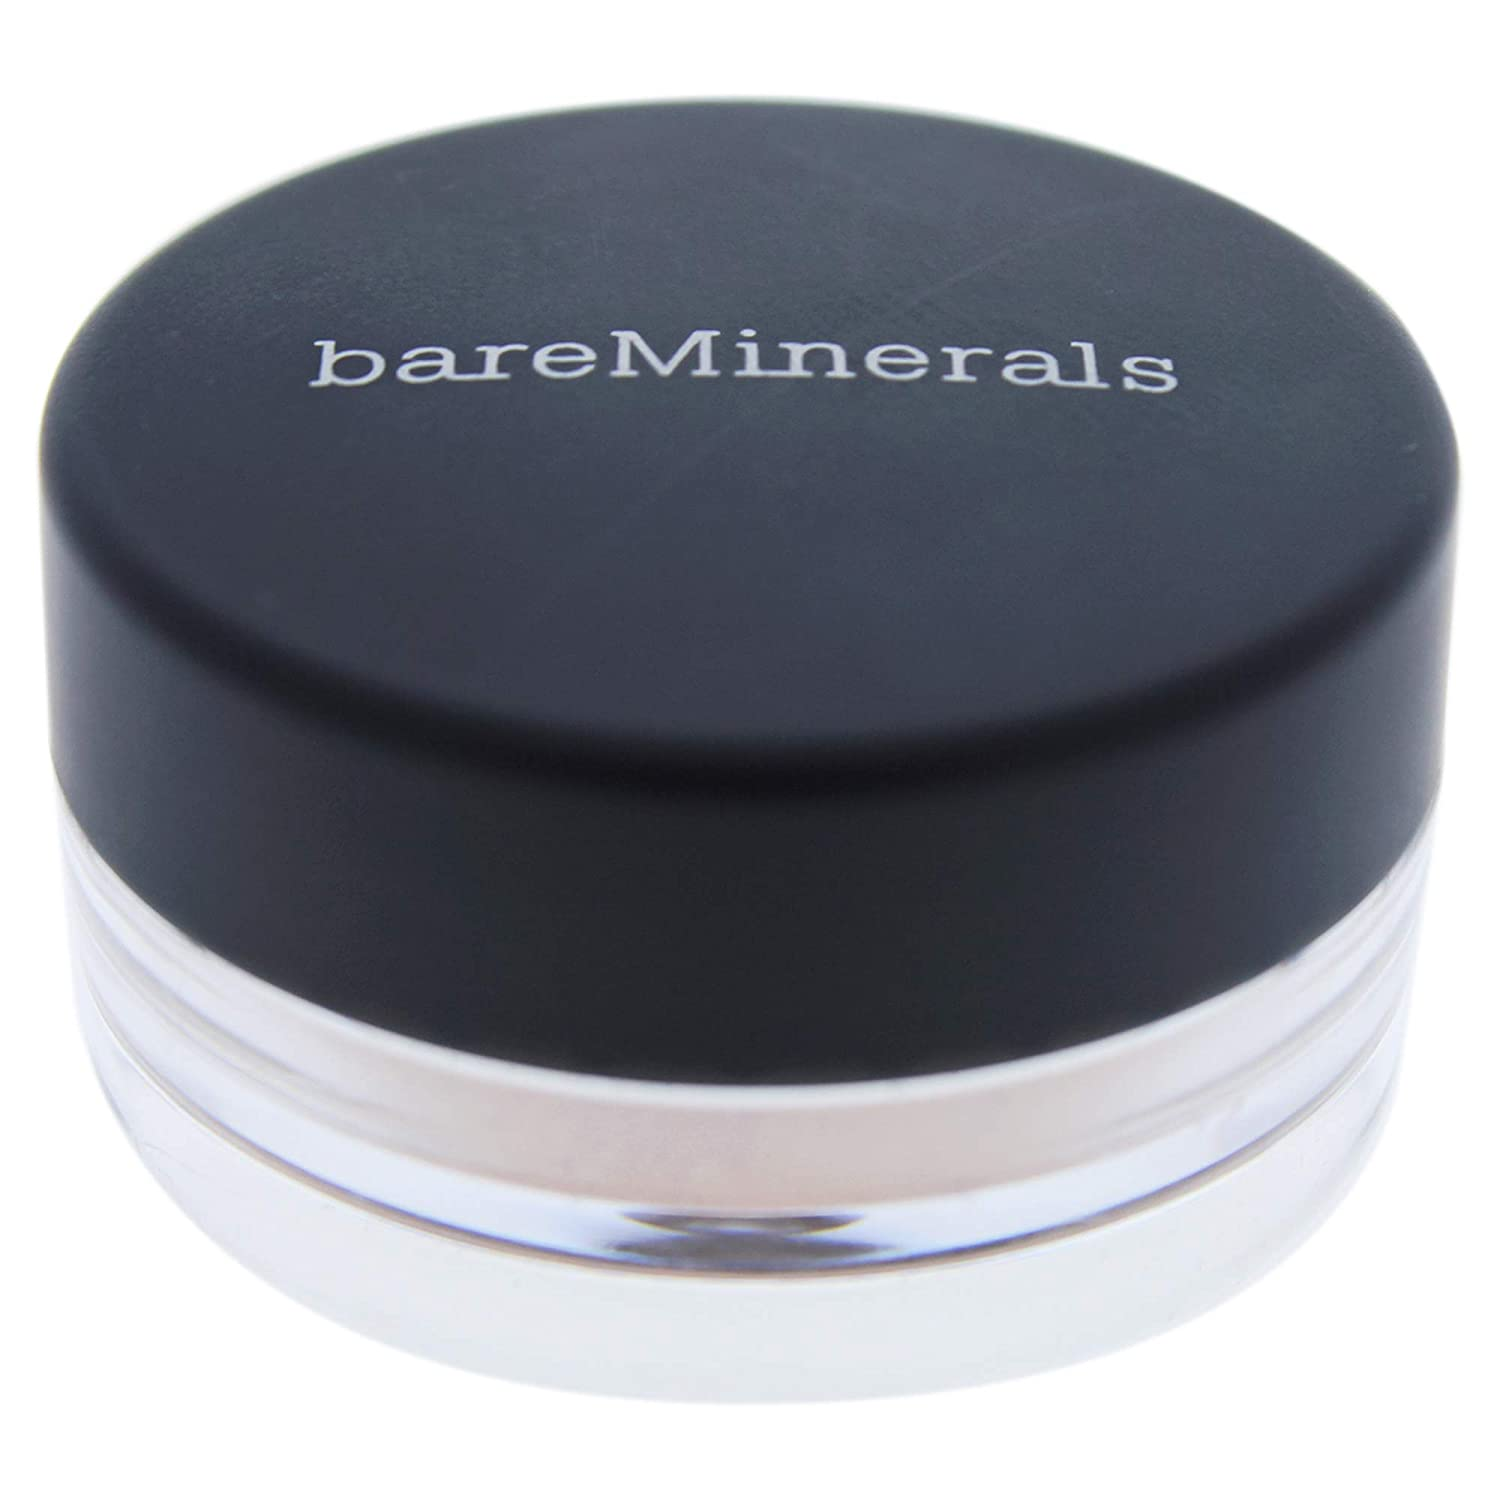 bareMinerals Eye Color for Women, North Beach, 0.02 Ounce